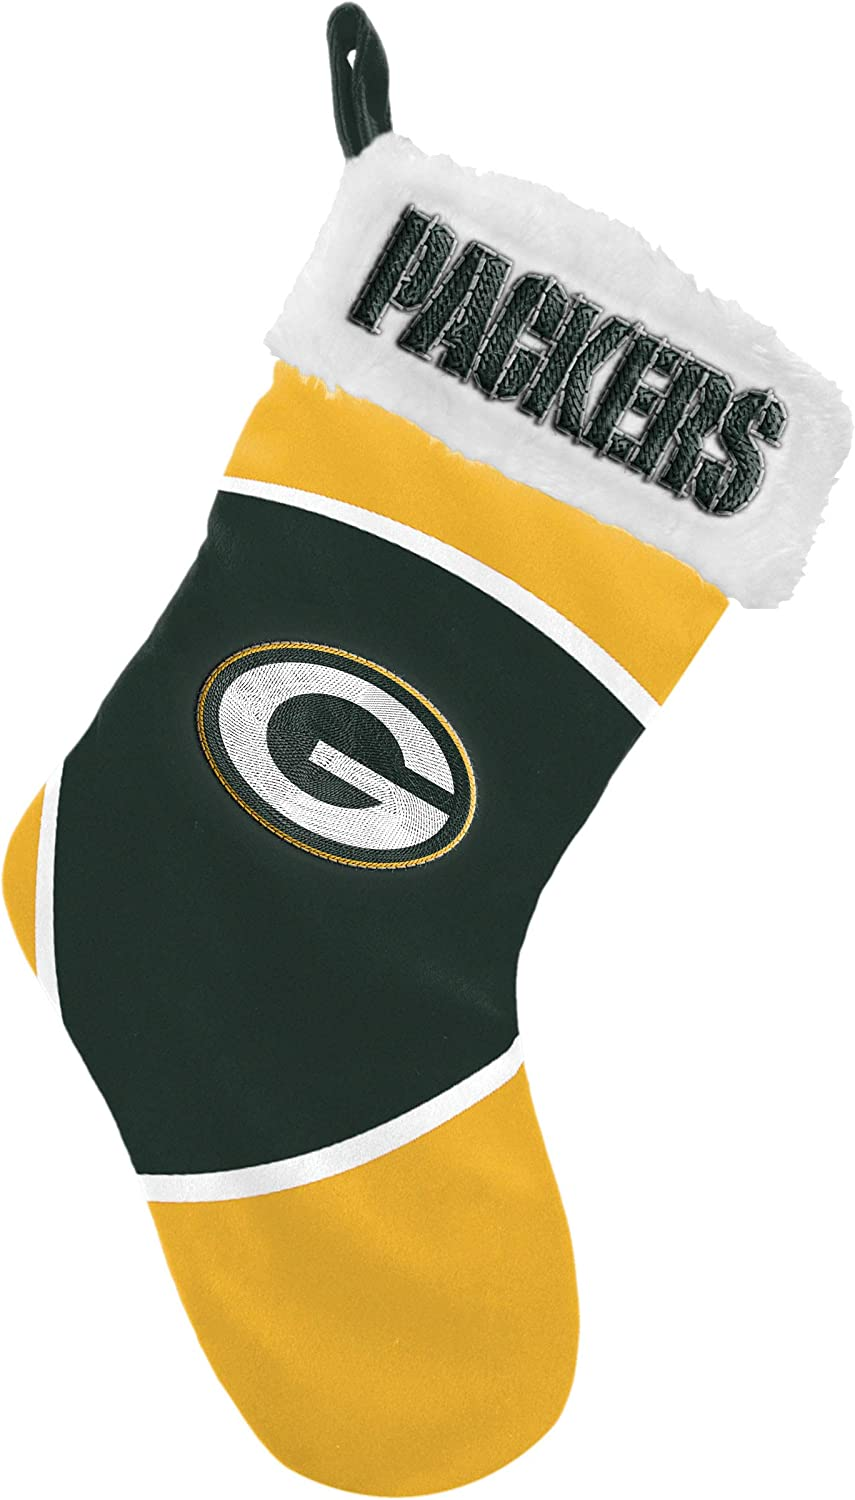 FOCO NFL Christmas Stocking - Plush Limited Edition Holiday Stocking - Represent The NFC East and Show Your Team Spirit with Officially Licensed Football Fan Decorations